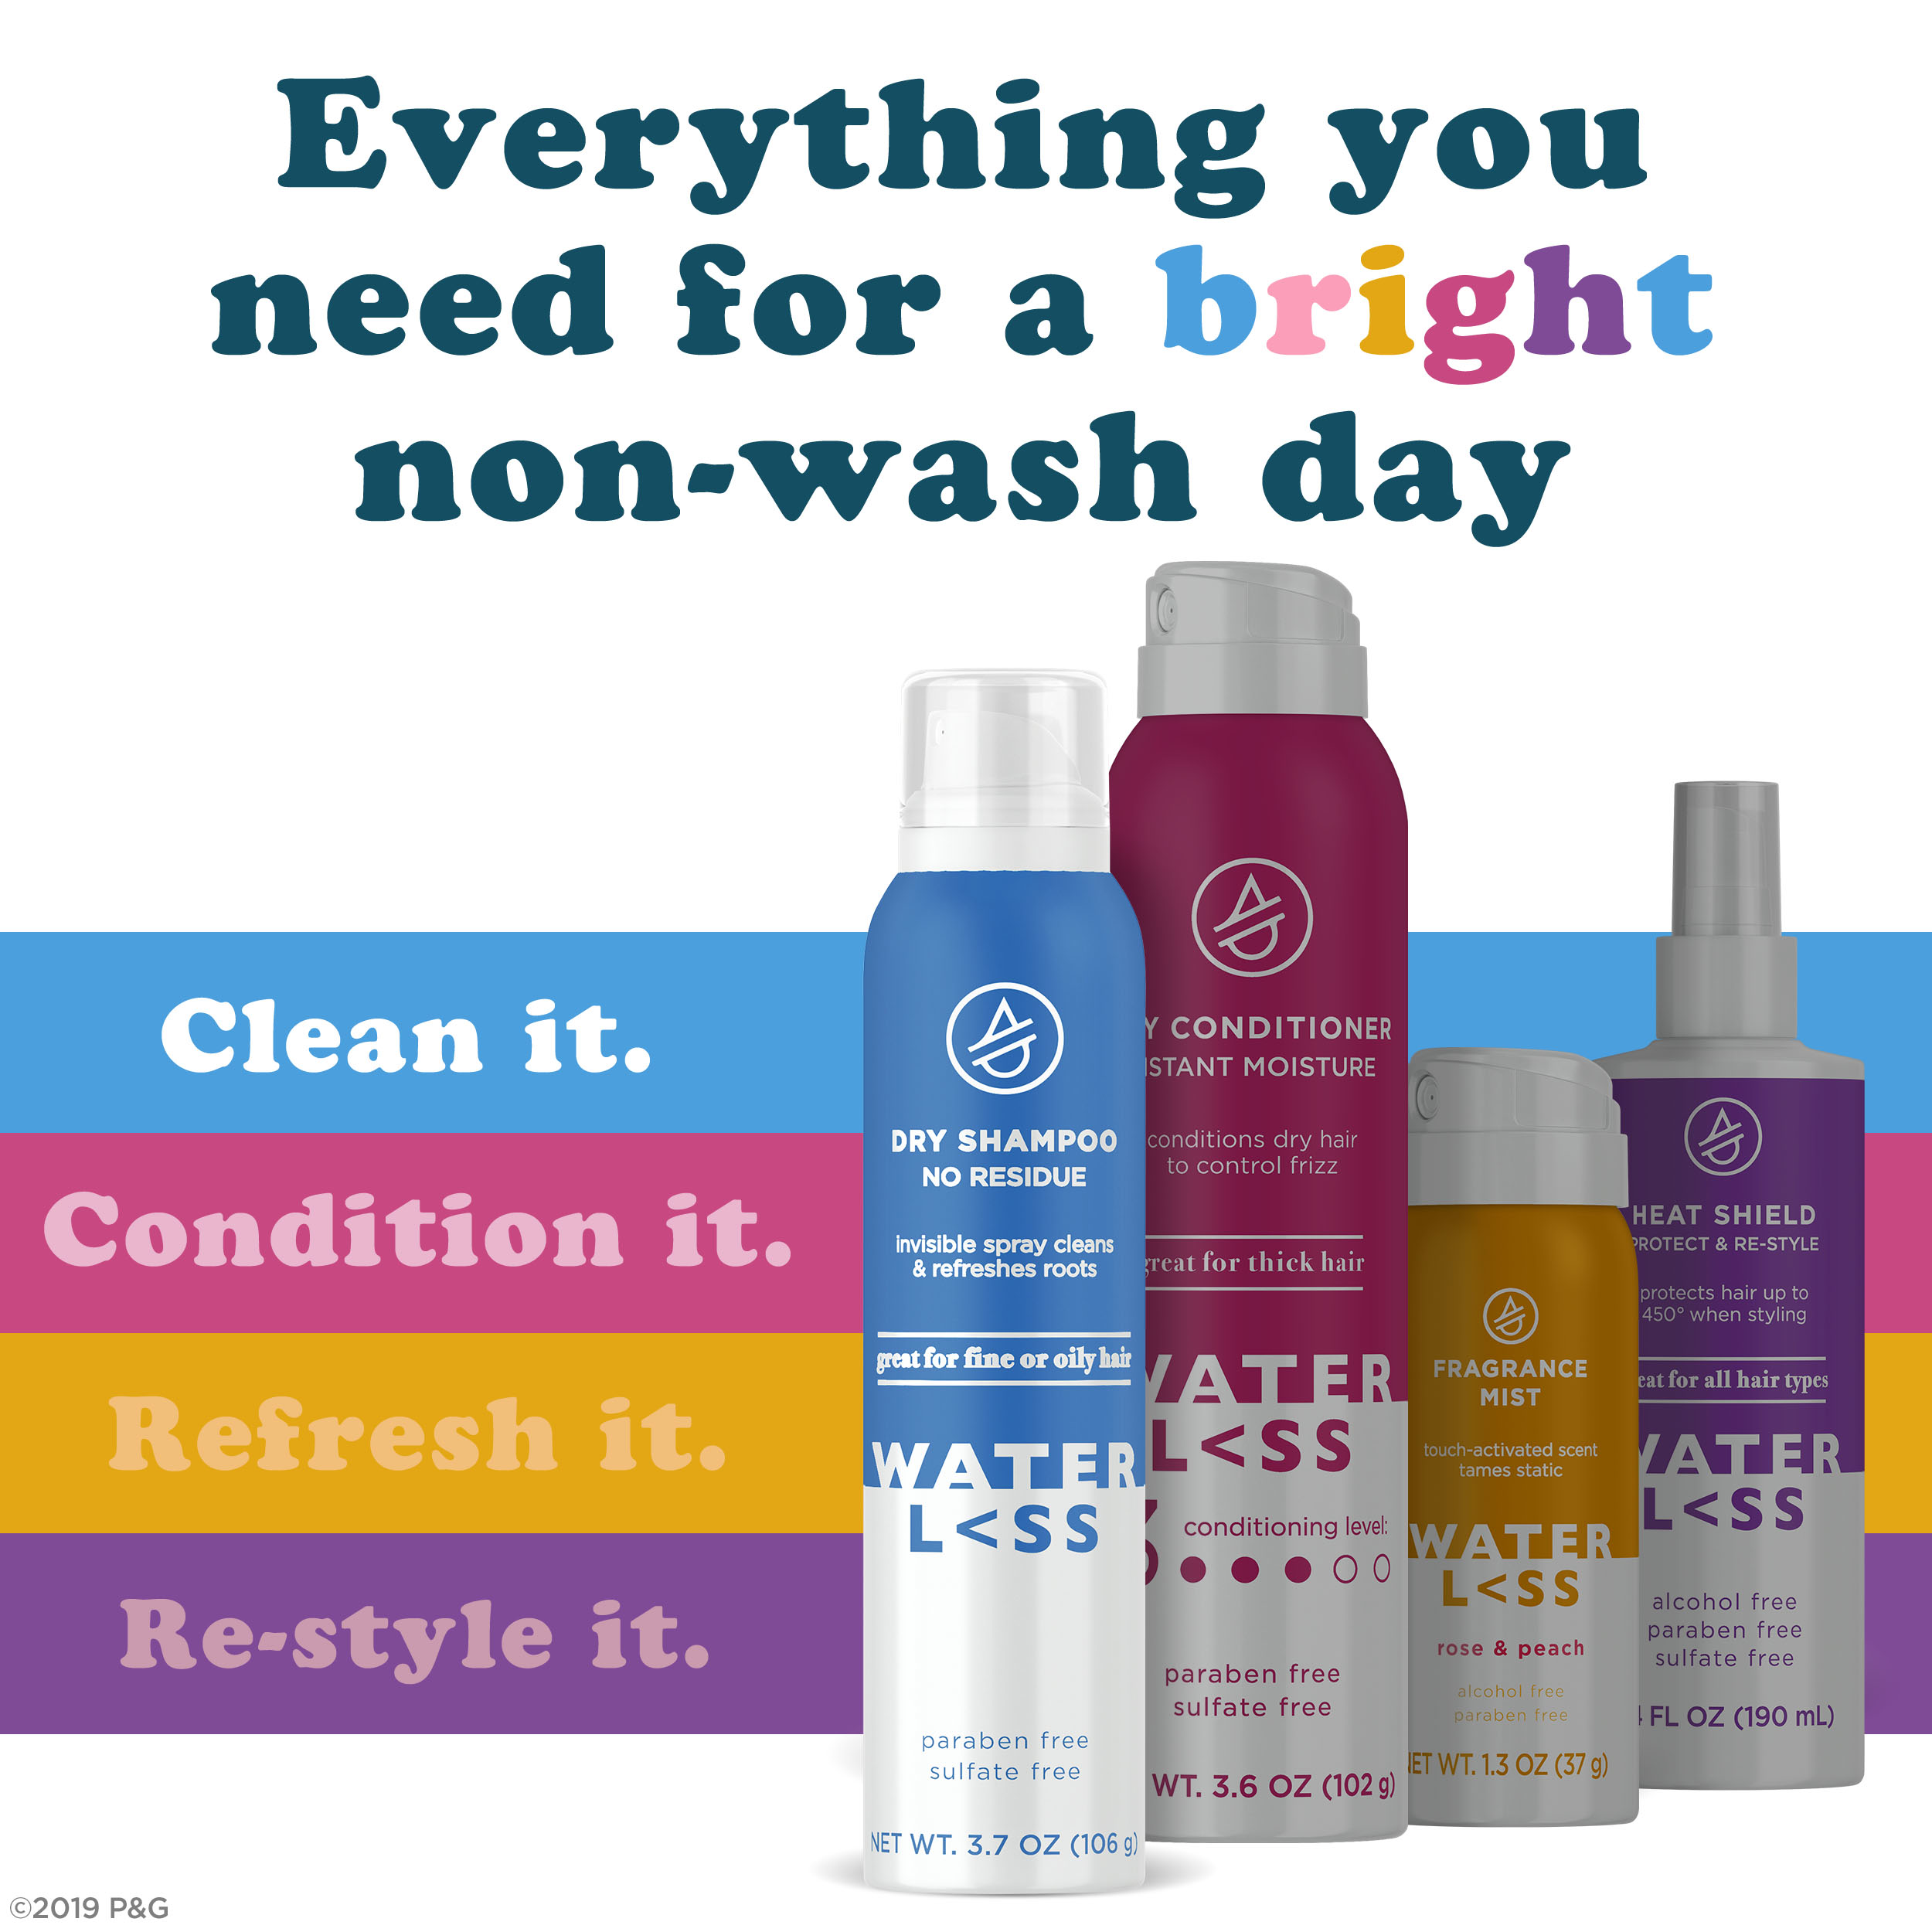 Everything you need for a bright non-wash day. Clean it. Condition it. Refresh it. Re-style it.